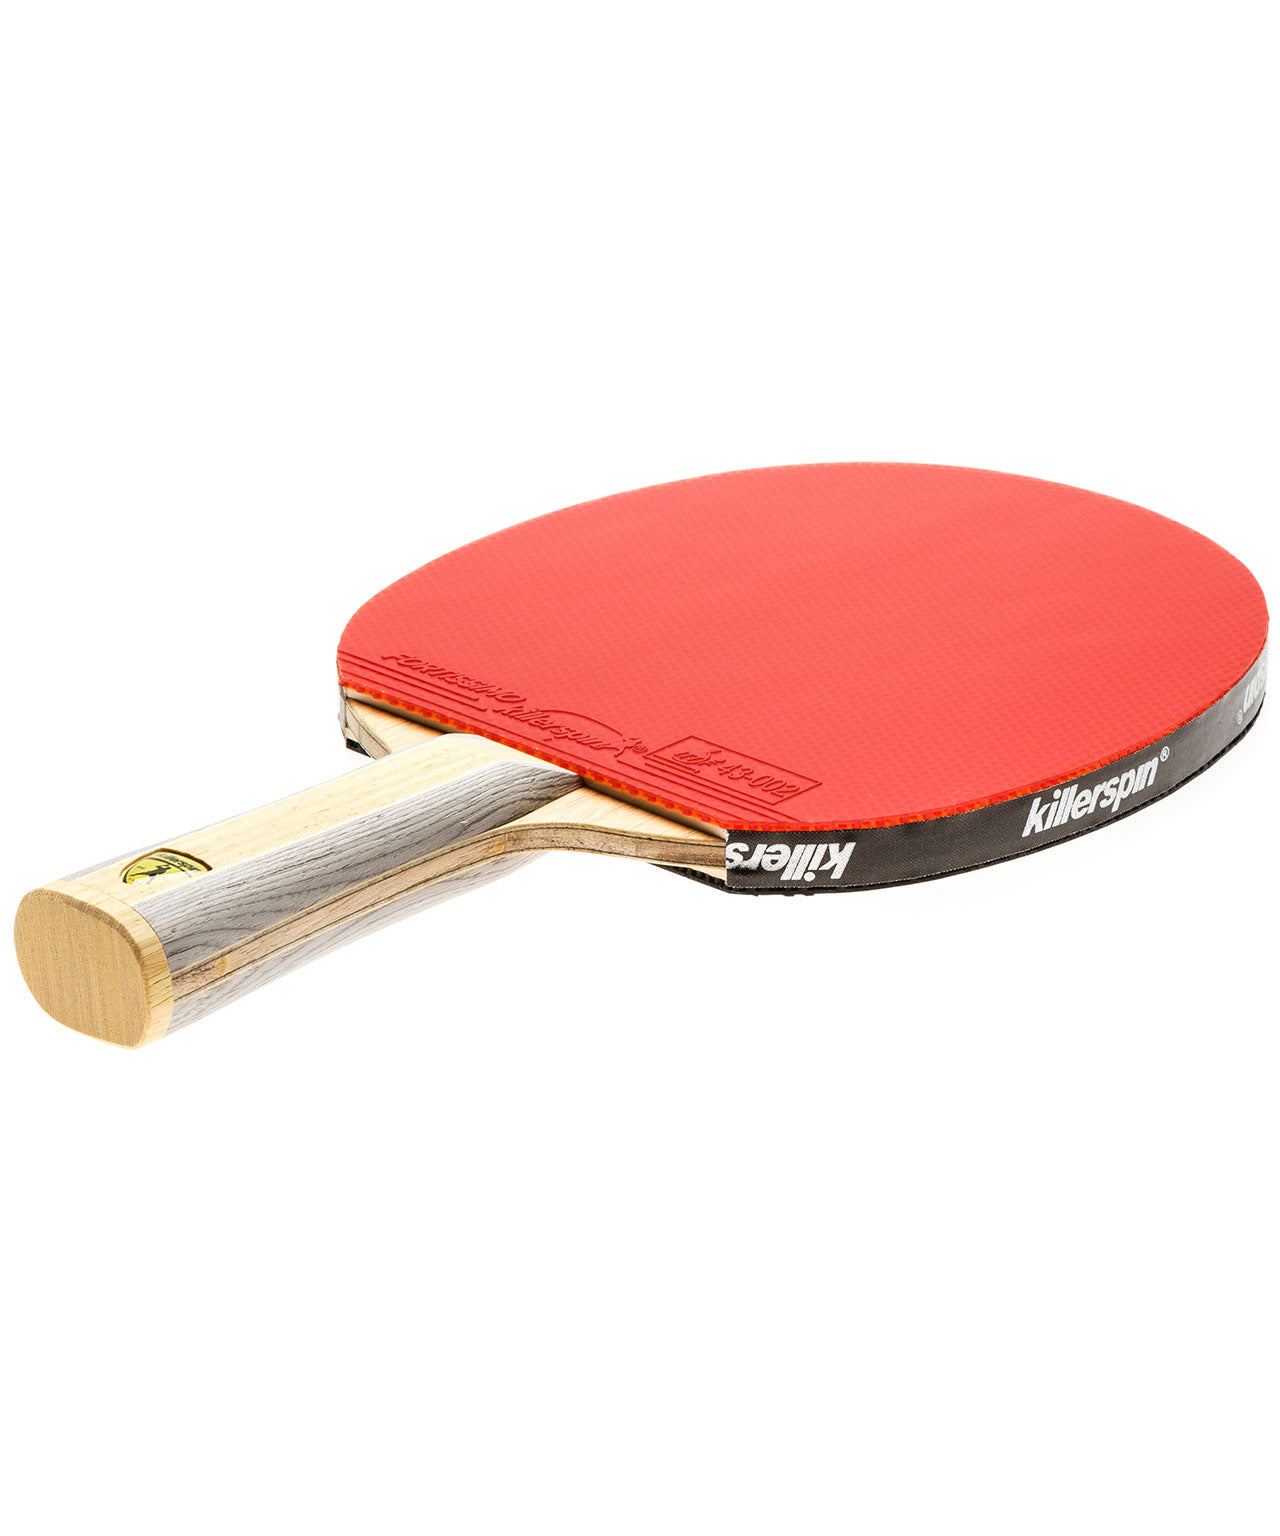 Killerspin Ping Pong Paddle Diamond CQ Premium - Flared Red Fortissimo Rubber